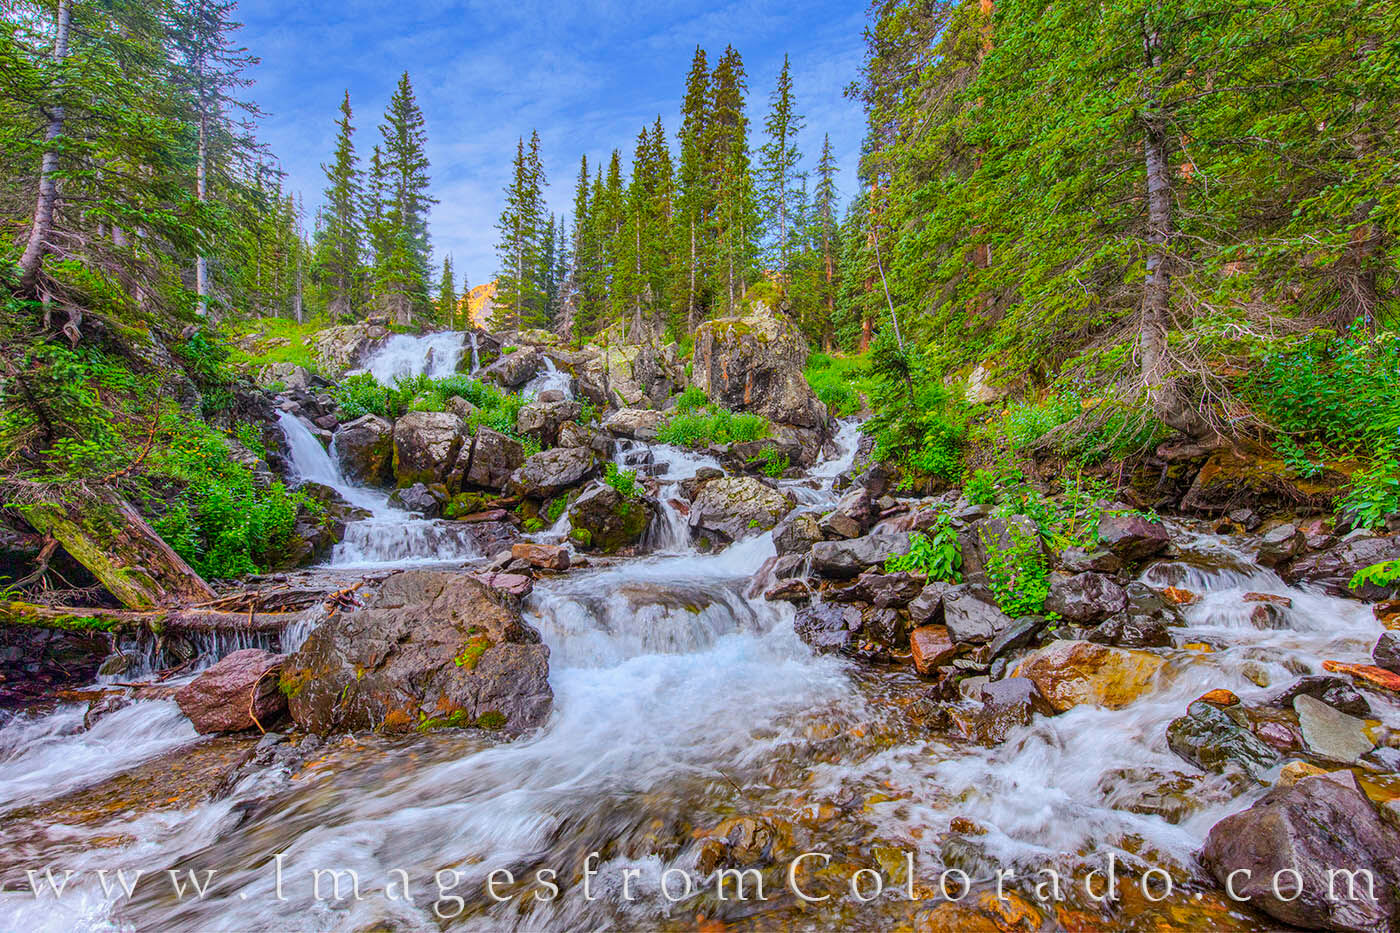 This beautiful cascade comes from the East Fork of Dallas Creek nea the Dallas Divide. Just off the Blue Lakes Trail between...